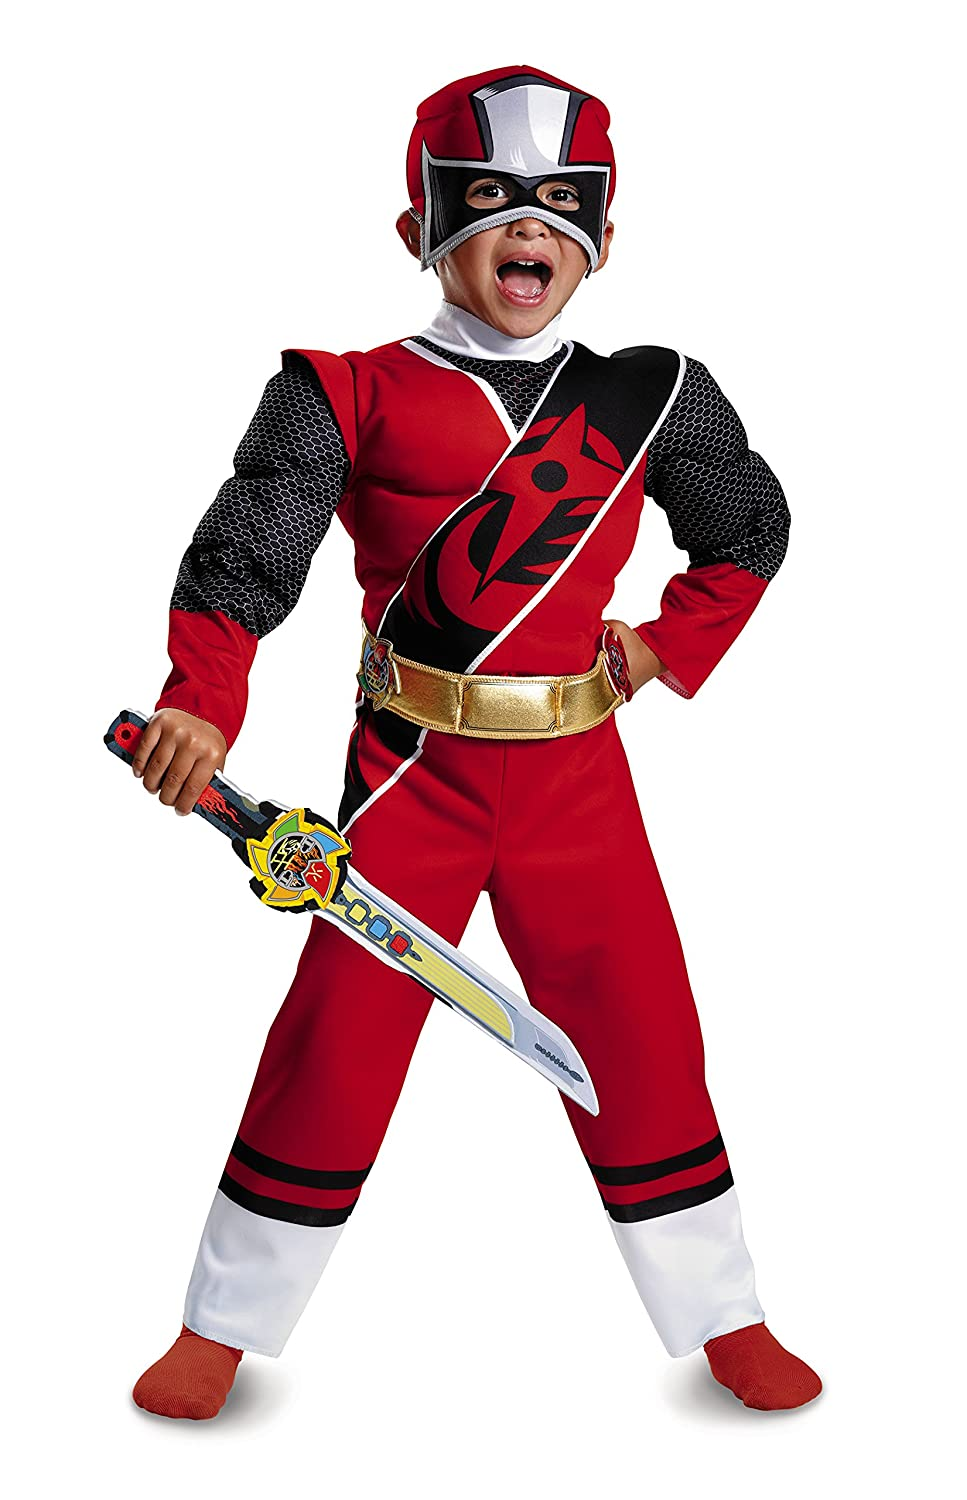 Amazon.com Disguise Power Rangers Ninja Steel Toddler Muscle Costume Red Medium (3T-4T) Toys u0026 Games  sc 1 st  Amazon.com & Amazon.com: Disguise Power Rangers Ninja Steel Toddler Muscle ...